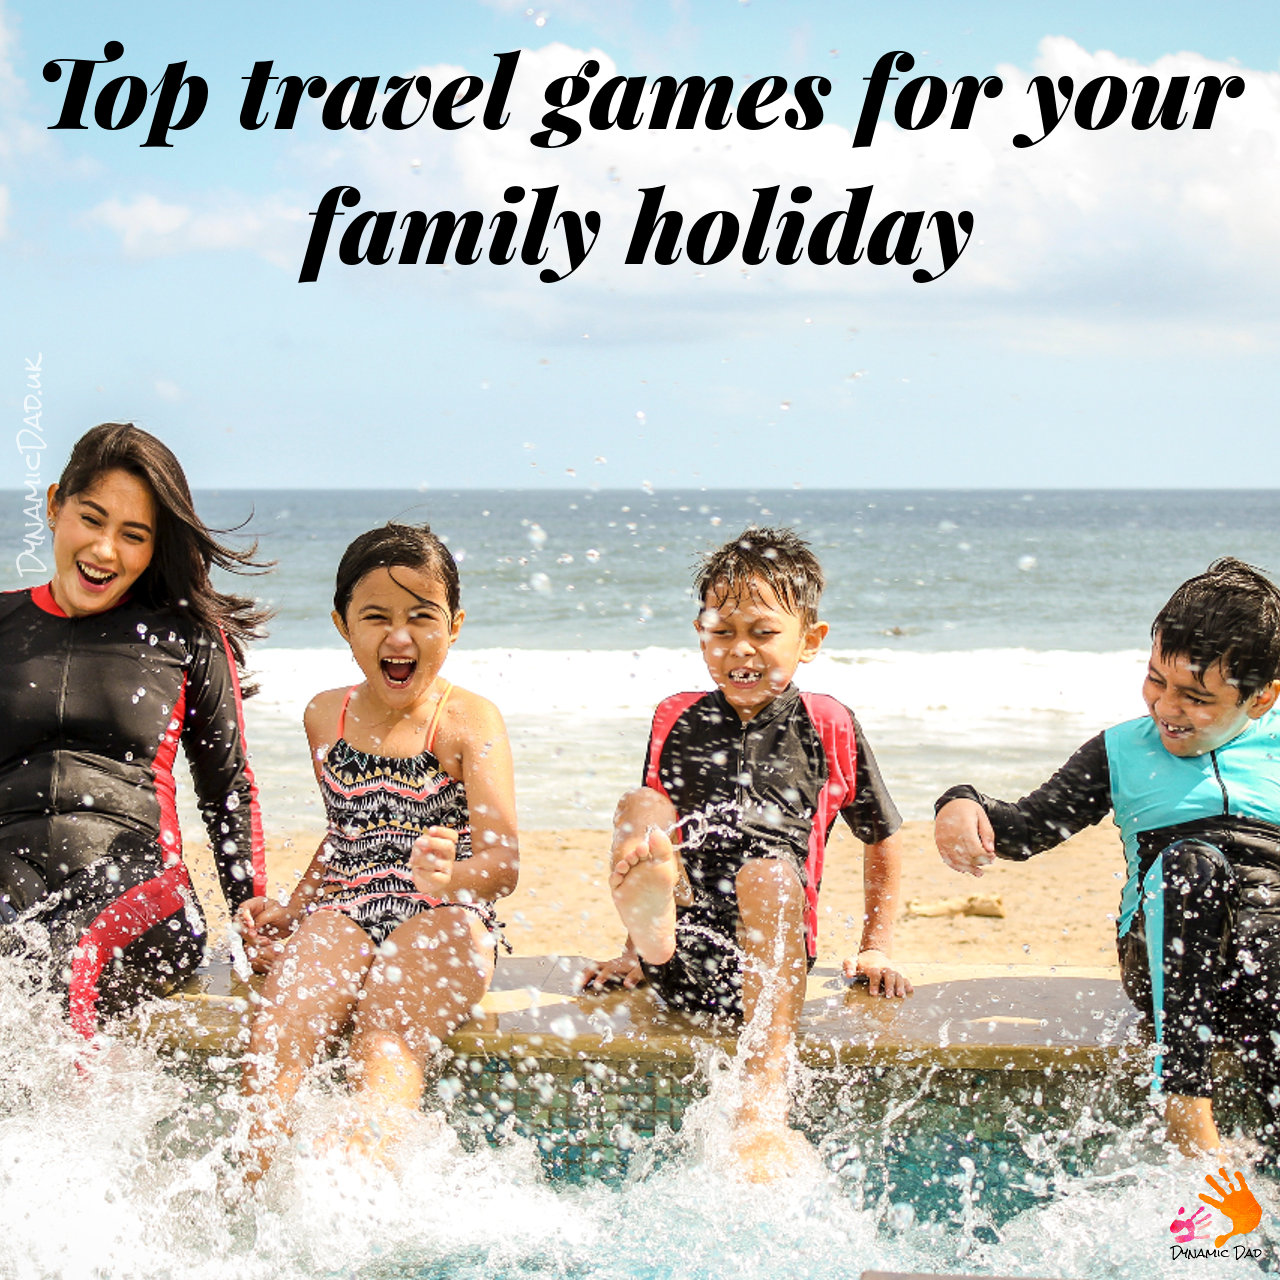 Top travel games for your family holiday - Dynamic Dad